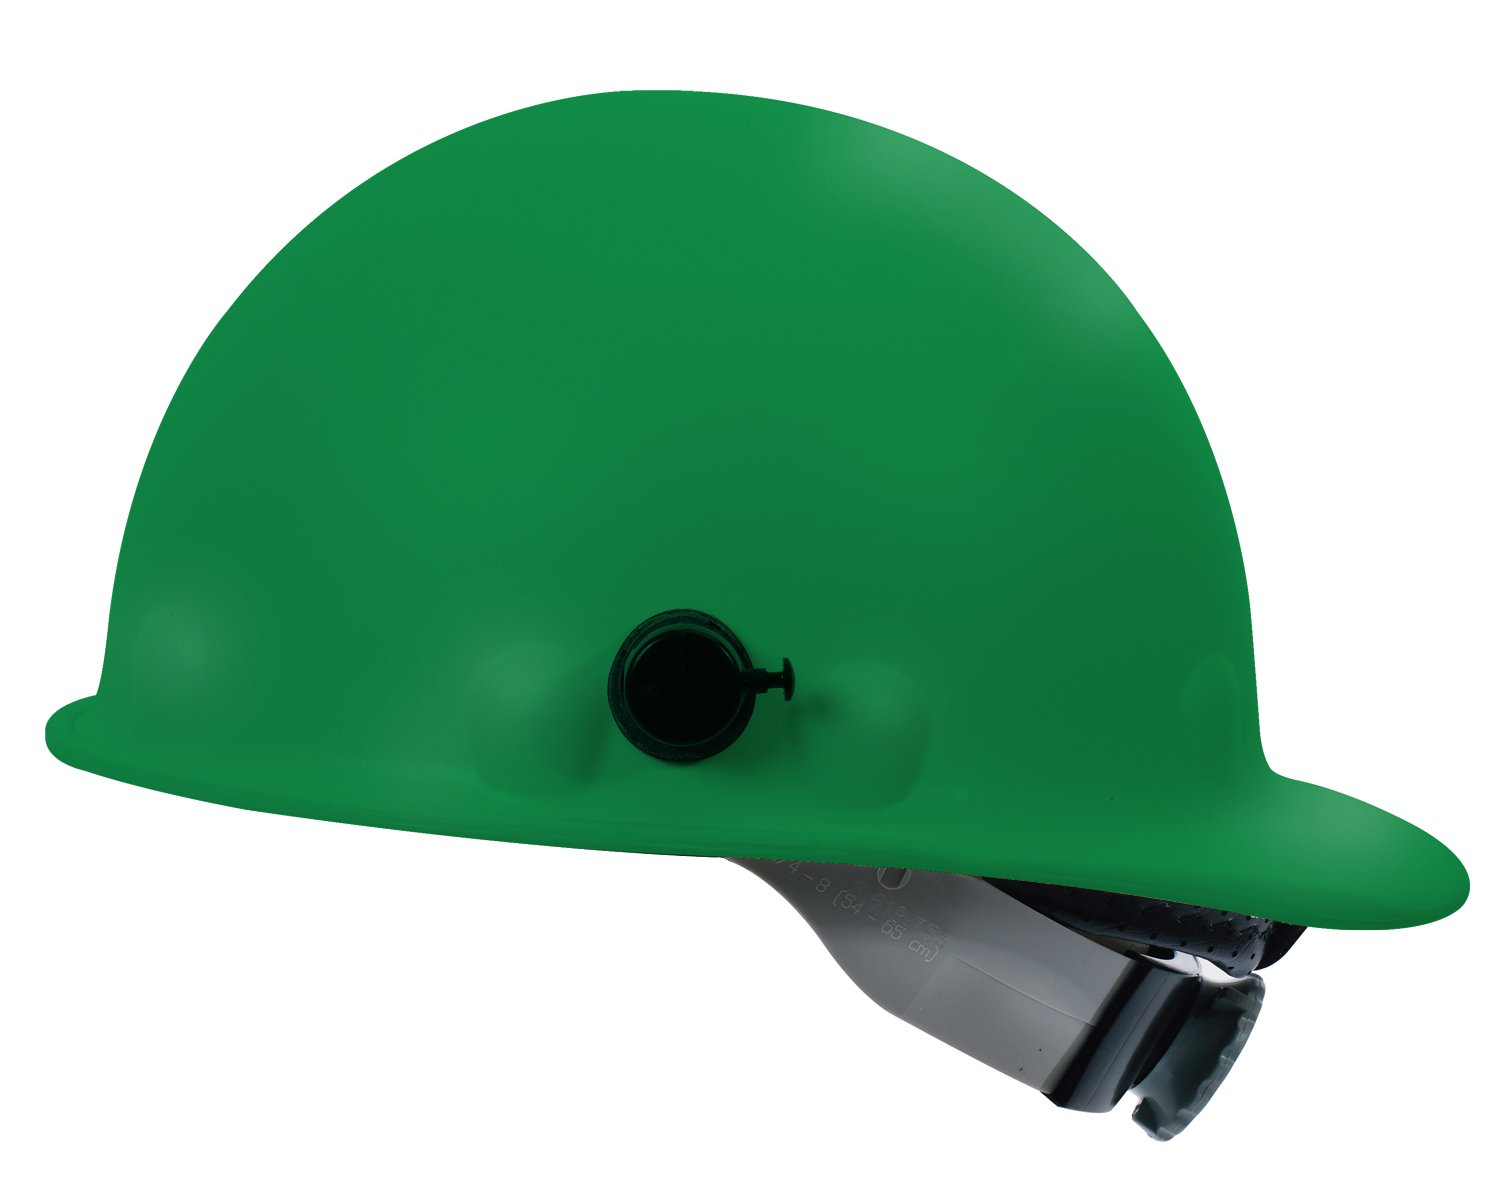 Fibre-Metal by Honeywell P2AQSW74A000 Super Eight Swing Strap Fiber Glass Cap Style Hard Hat with Quick-Lok, Green by Honeywell B016IHEBXU